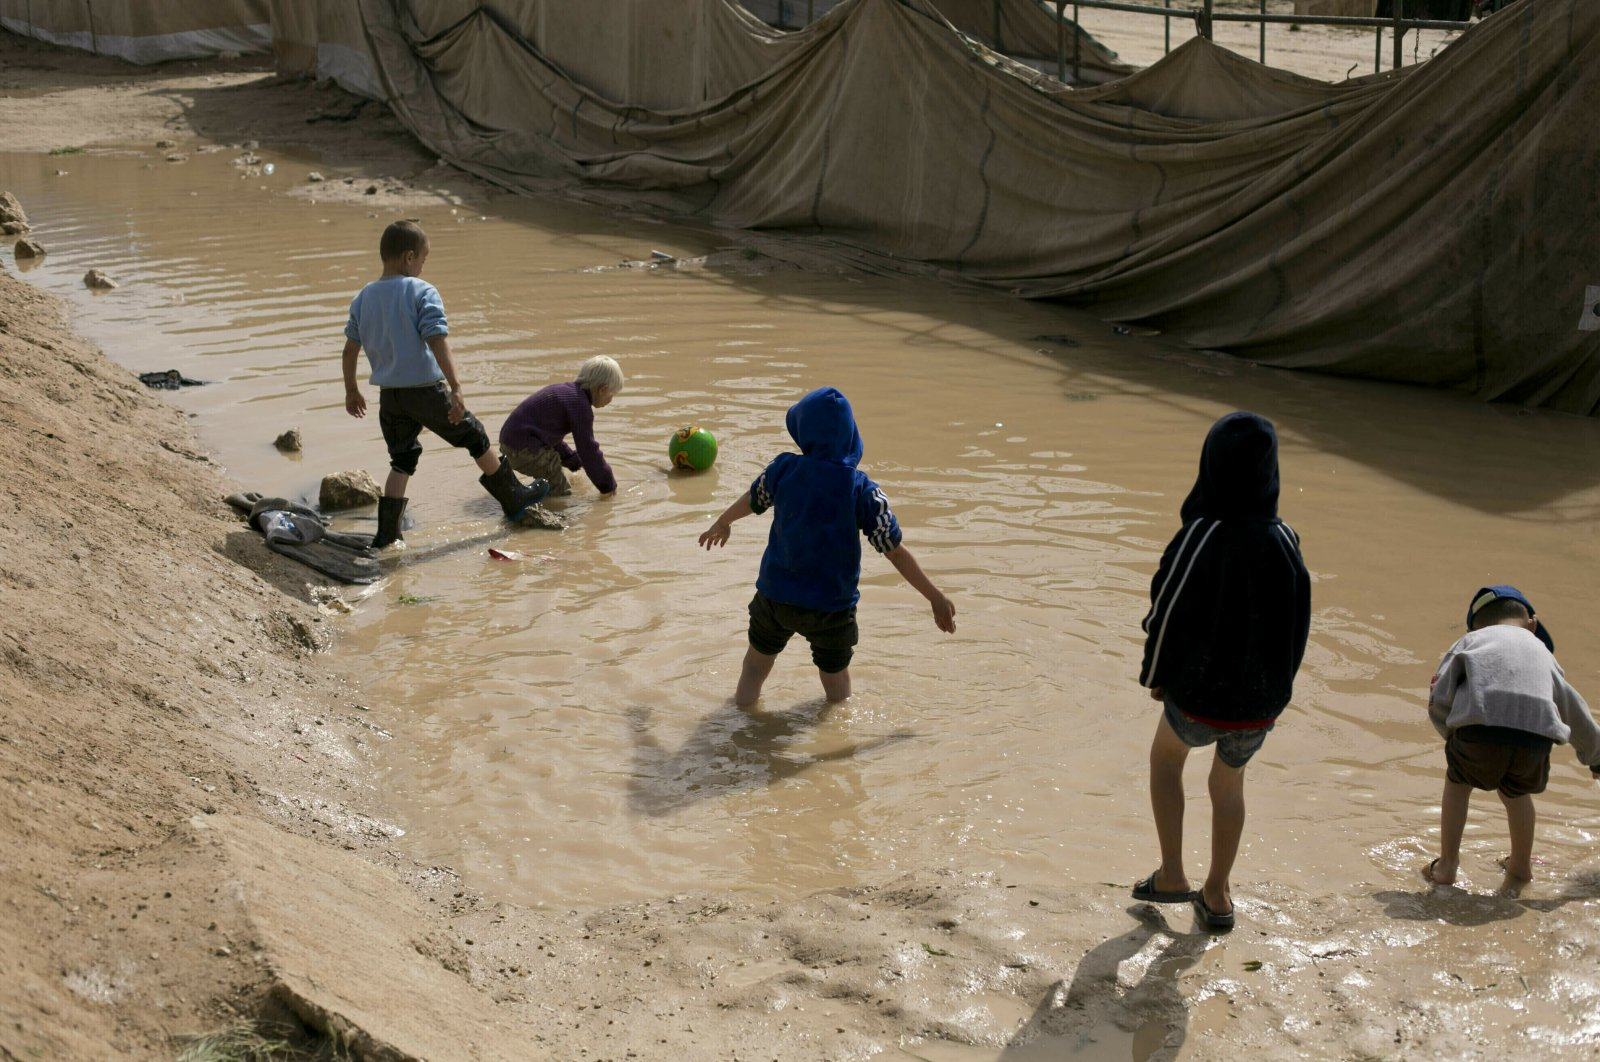 Children play in a muddy puddle in the section designated for foreign families at the Al-Hol camp in Hasakeh province, Syria, on March 31, 2019. (AP Photo)